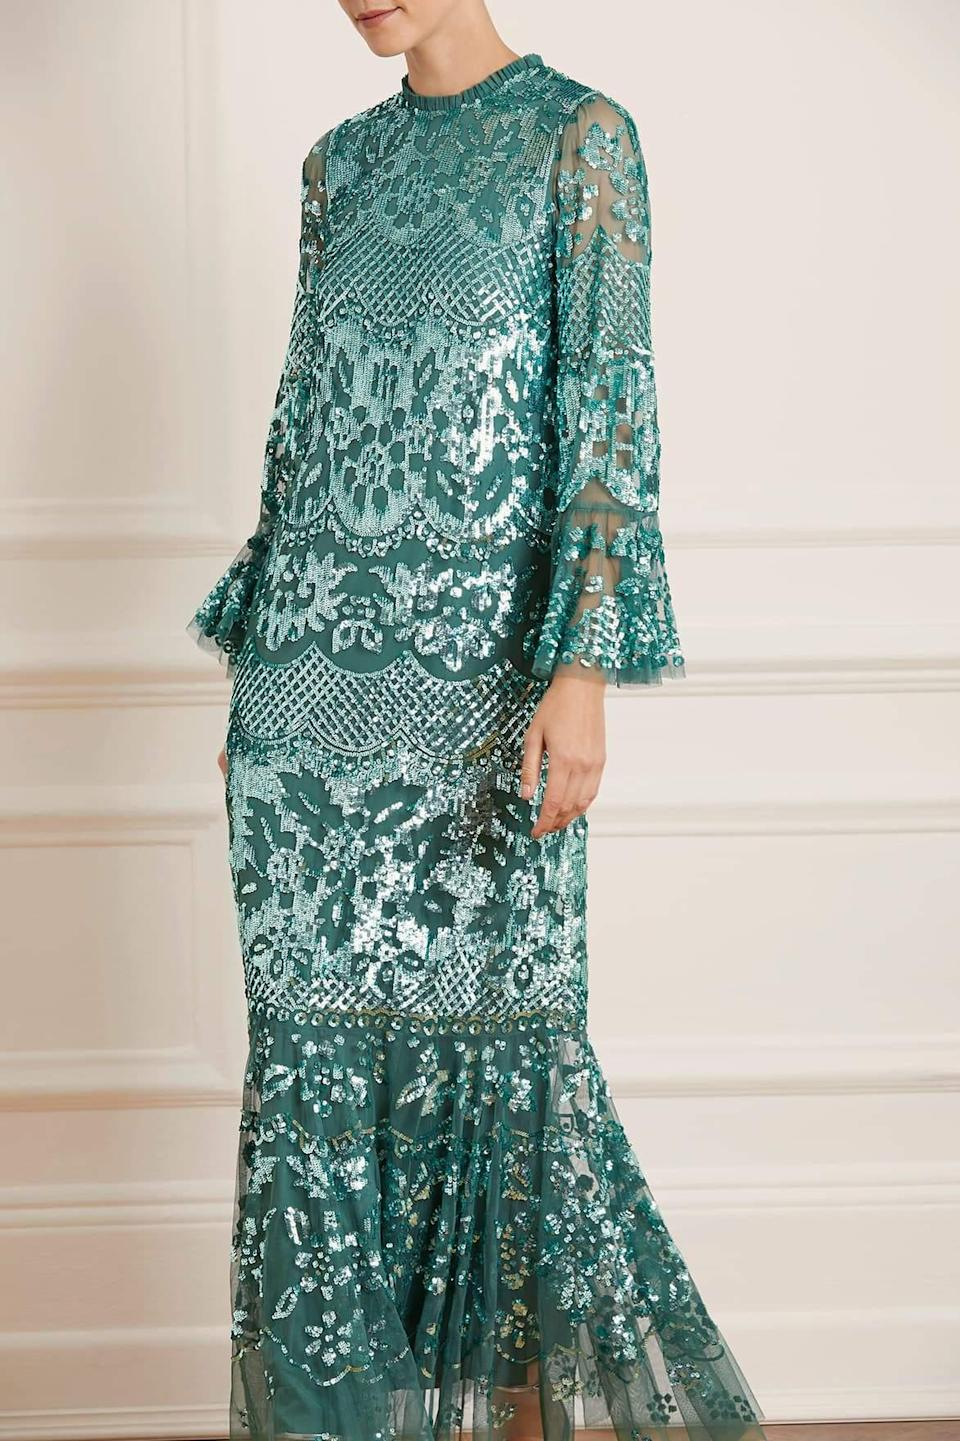 """<h2>Needle & Thread Snowdrop Gown In Teal</h2><br>A shimmering, near-iridescent shade of sea-glass green adds a third dimension to this 1930s-inspired lace dress.<br><br><em>Shop <strong><a href=""""https://us.needleandthread.com/"""" rel=""""nofollow noopener"""" target=""""_blank"""" data-ylk=""""slk:Needle and Thread"""" class=""""link rapid-noclick-resp"""">Needle and Thread</a></strong></em><br><br><strong>Needle & Thread</strong> Snowdrop Gown, $, available at <a href=""""https://go.skimresources.com/?id=30283X879131&url=https%3A%2F%2Fus.needleandthread.com%2Fproducts%2Fsnowdrop-gown-botlle-green"""" rel=""""nofollow noopener"""" target=""""_blank"""" data-ylk=""""slk:Needle & Thread"""" class=""""link rapid-noclick-resp"""">Needle & Thread</a>"""